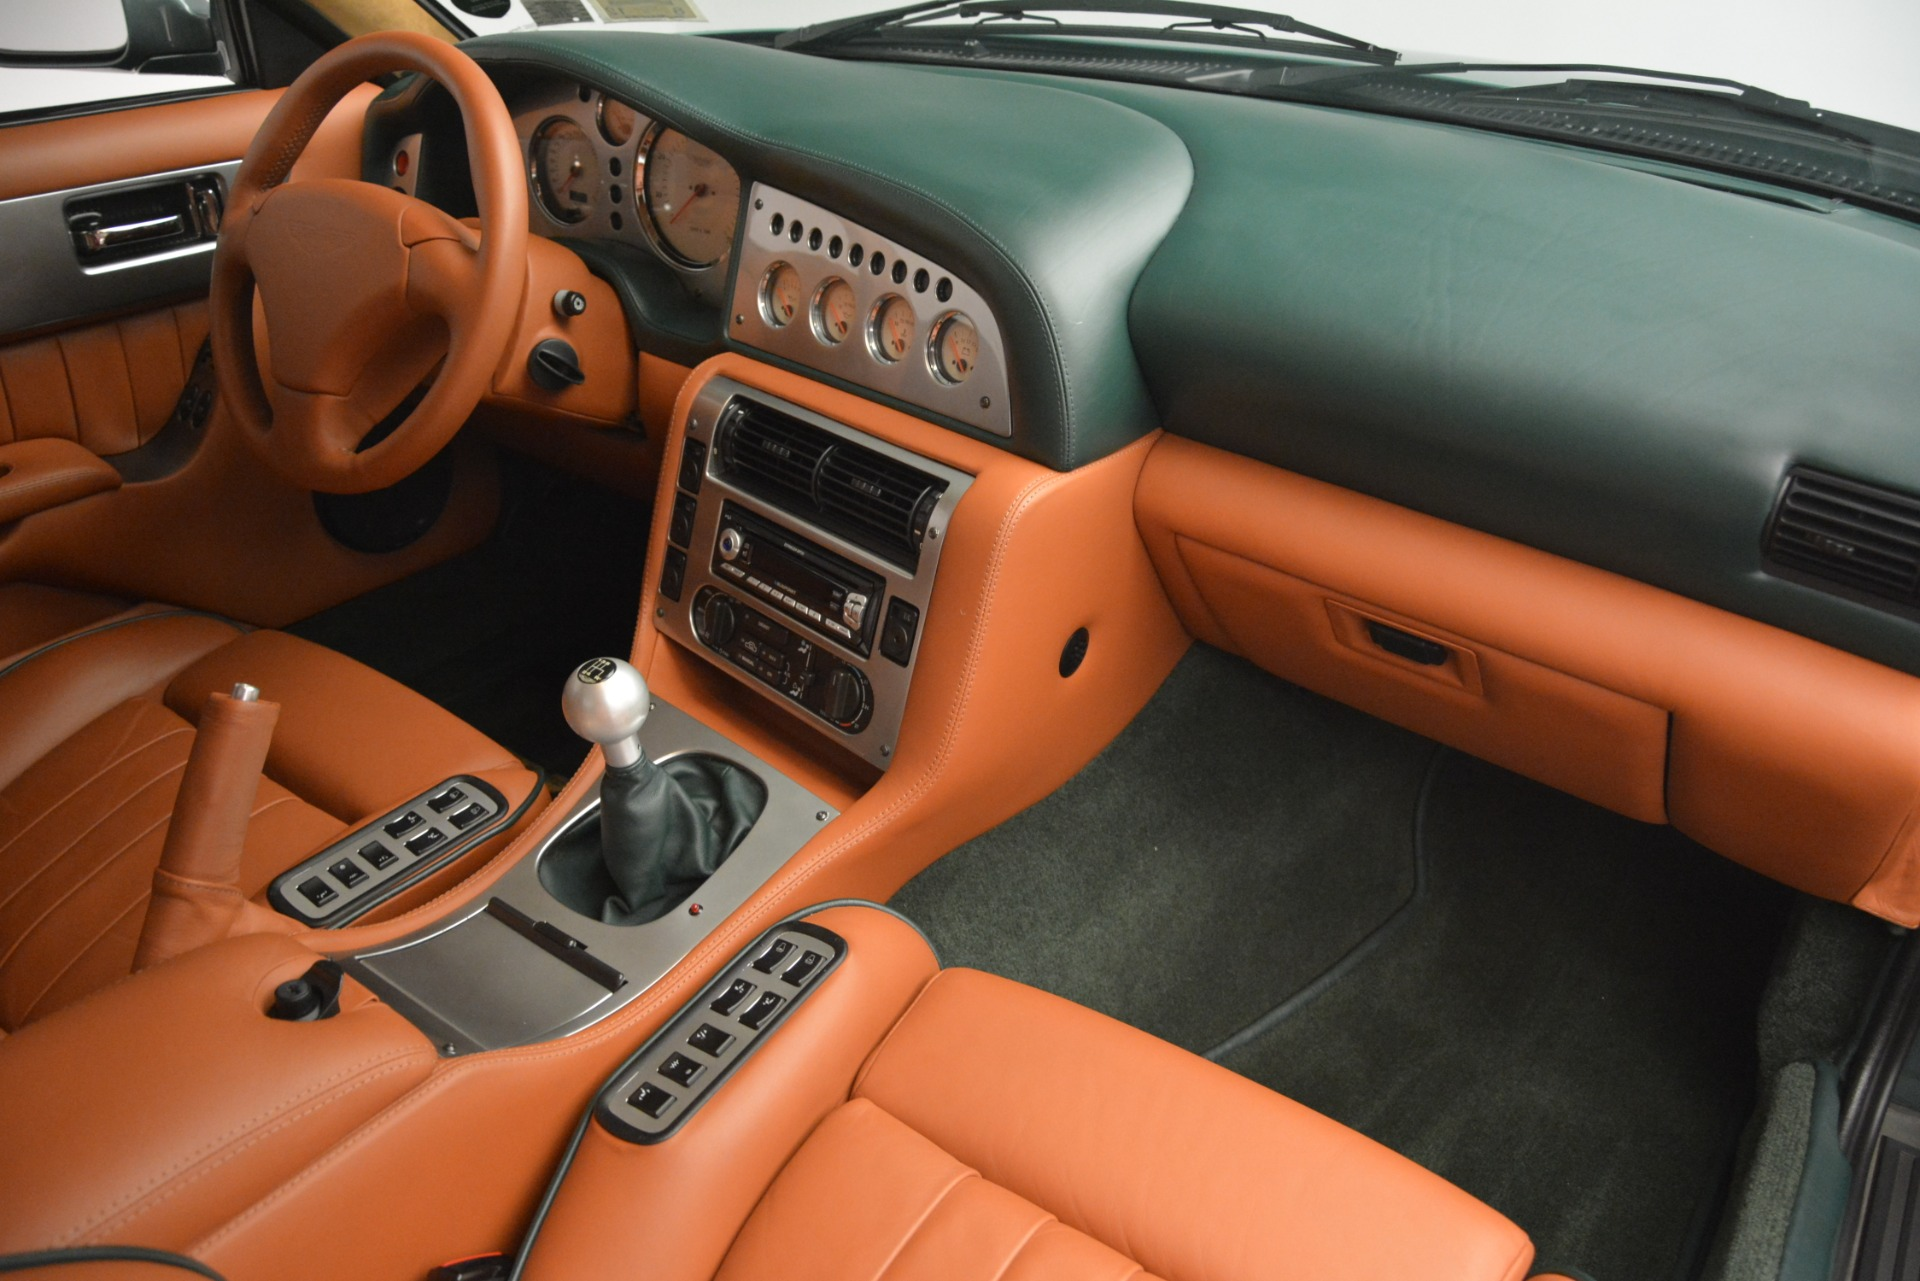 Used 1999 Aston Martin V8 Vantage Le Mans V600 Coupe For Sale In Westport, CT 2789_p28